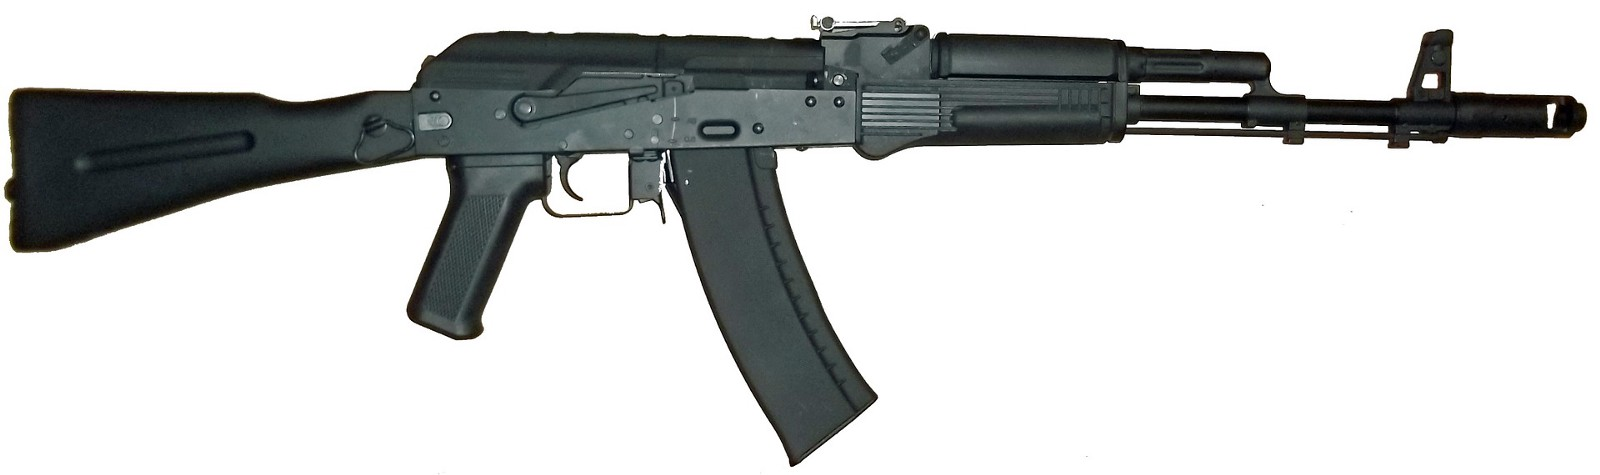 Image result for weapons